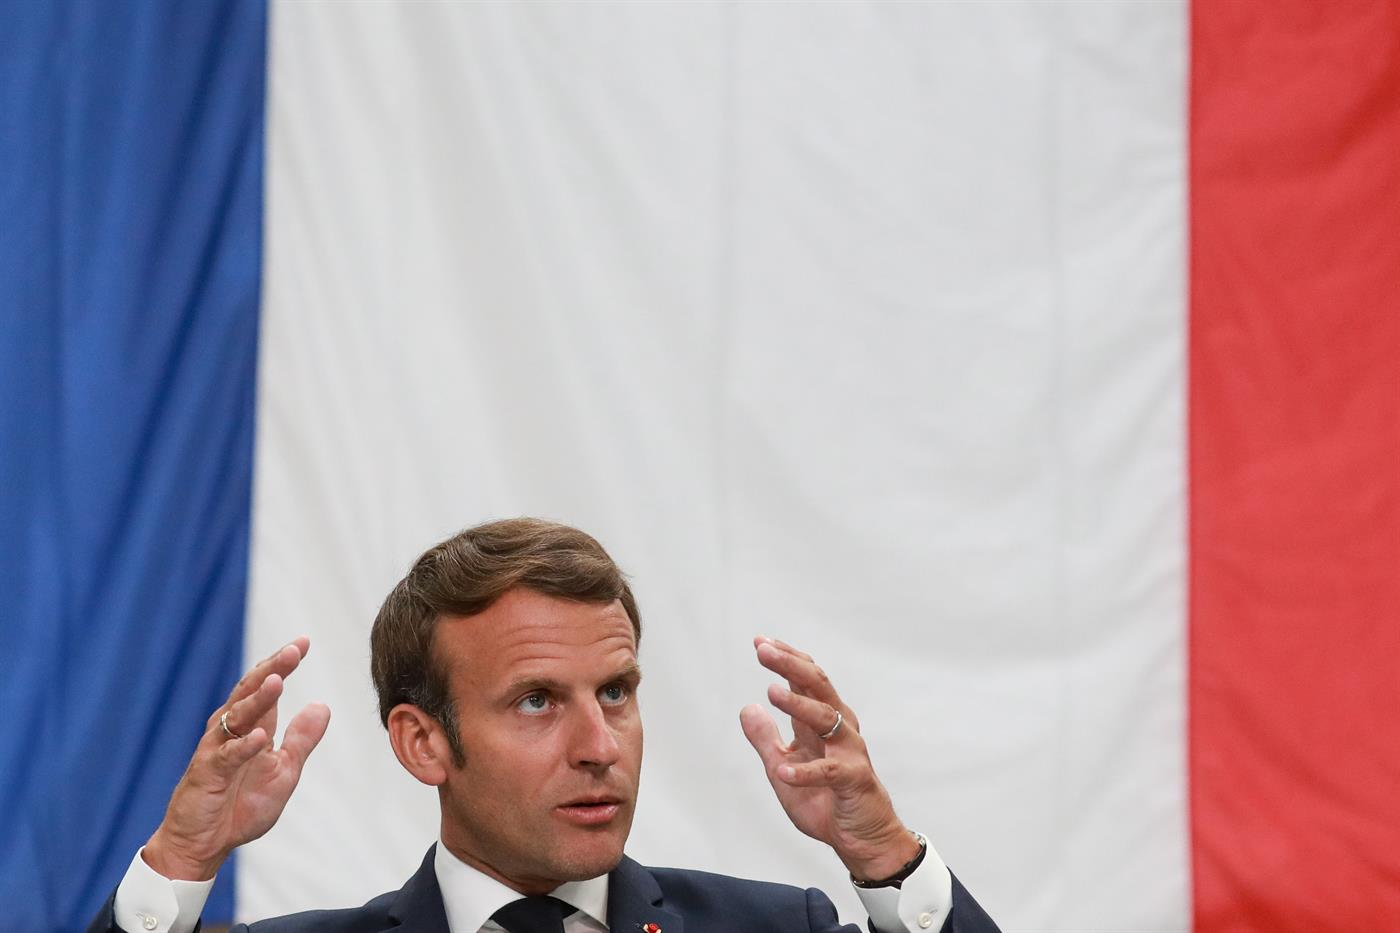 Macron in one of his interventions during the coronavirus pandemic.